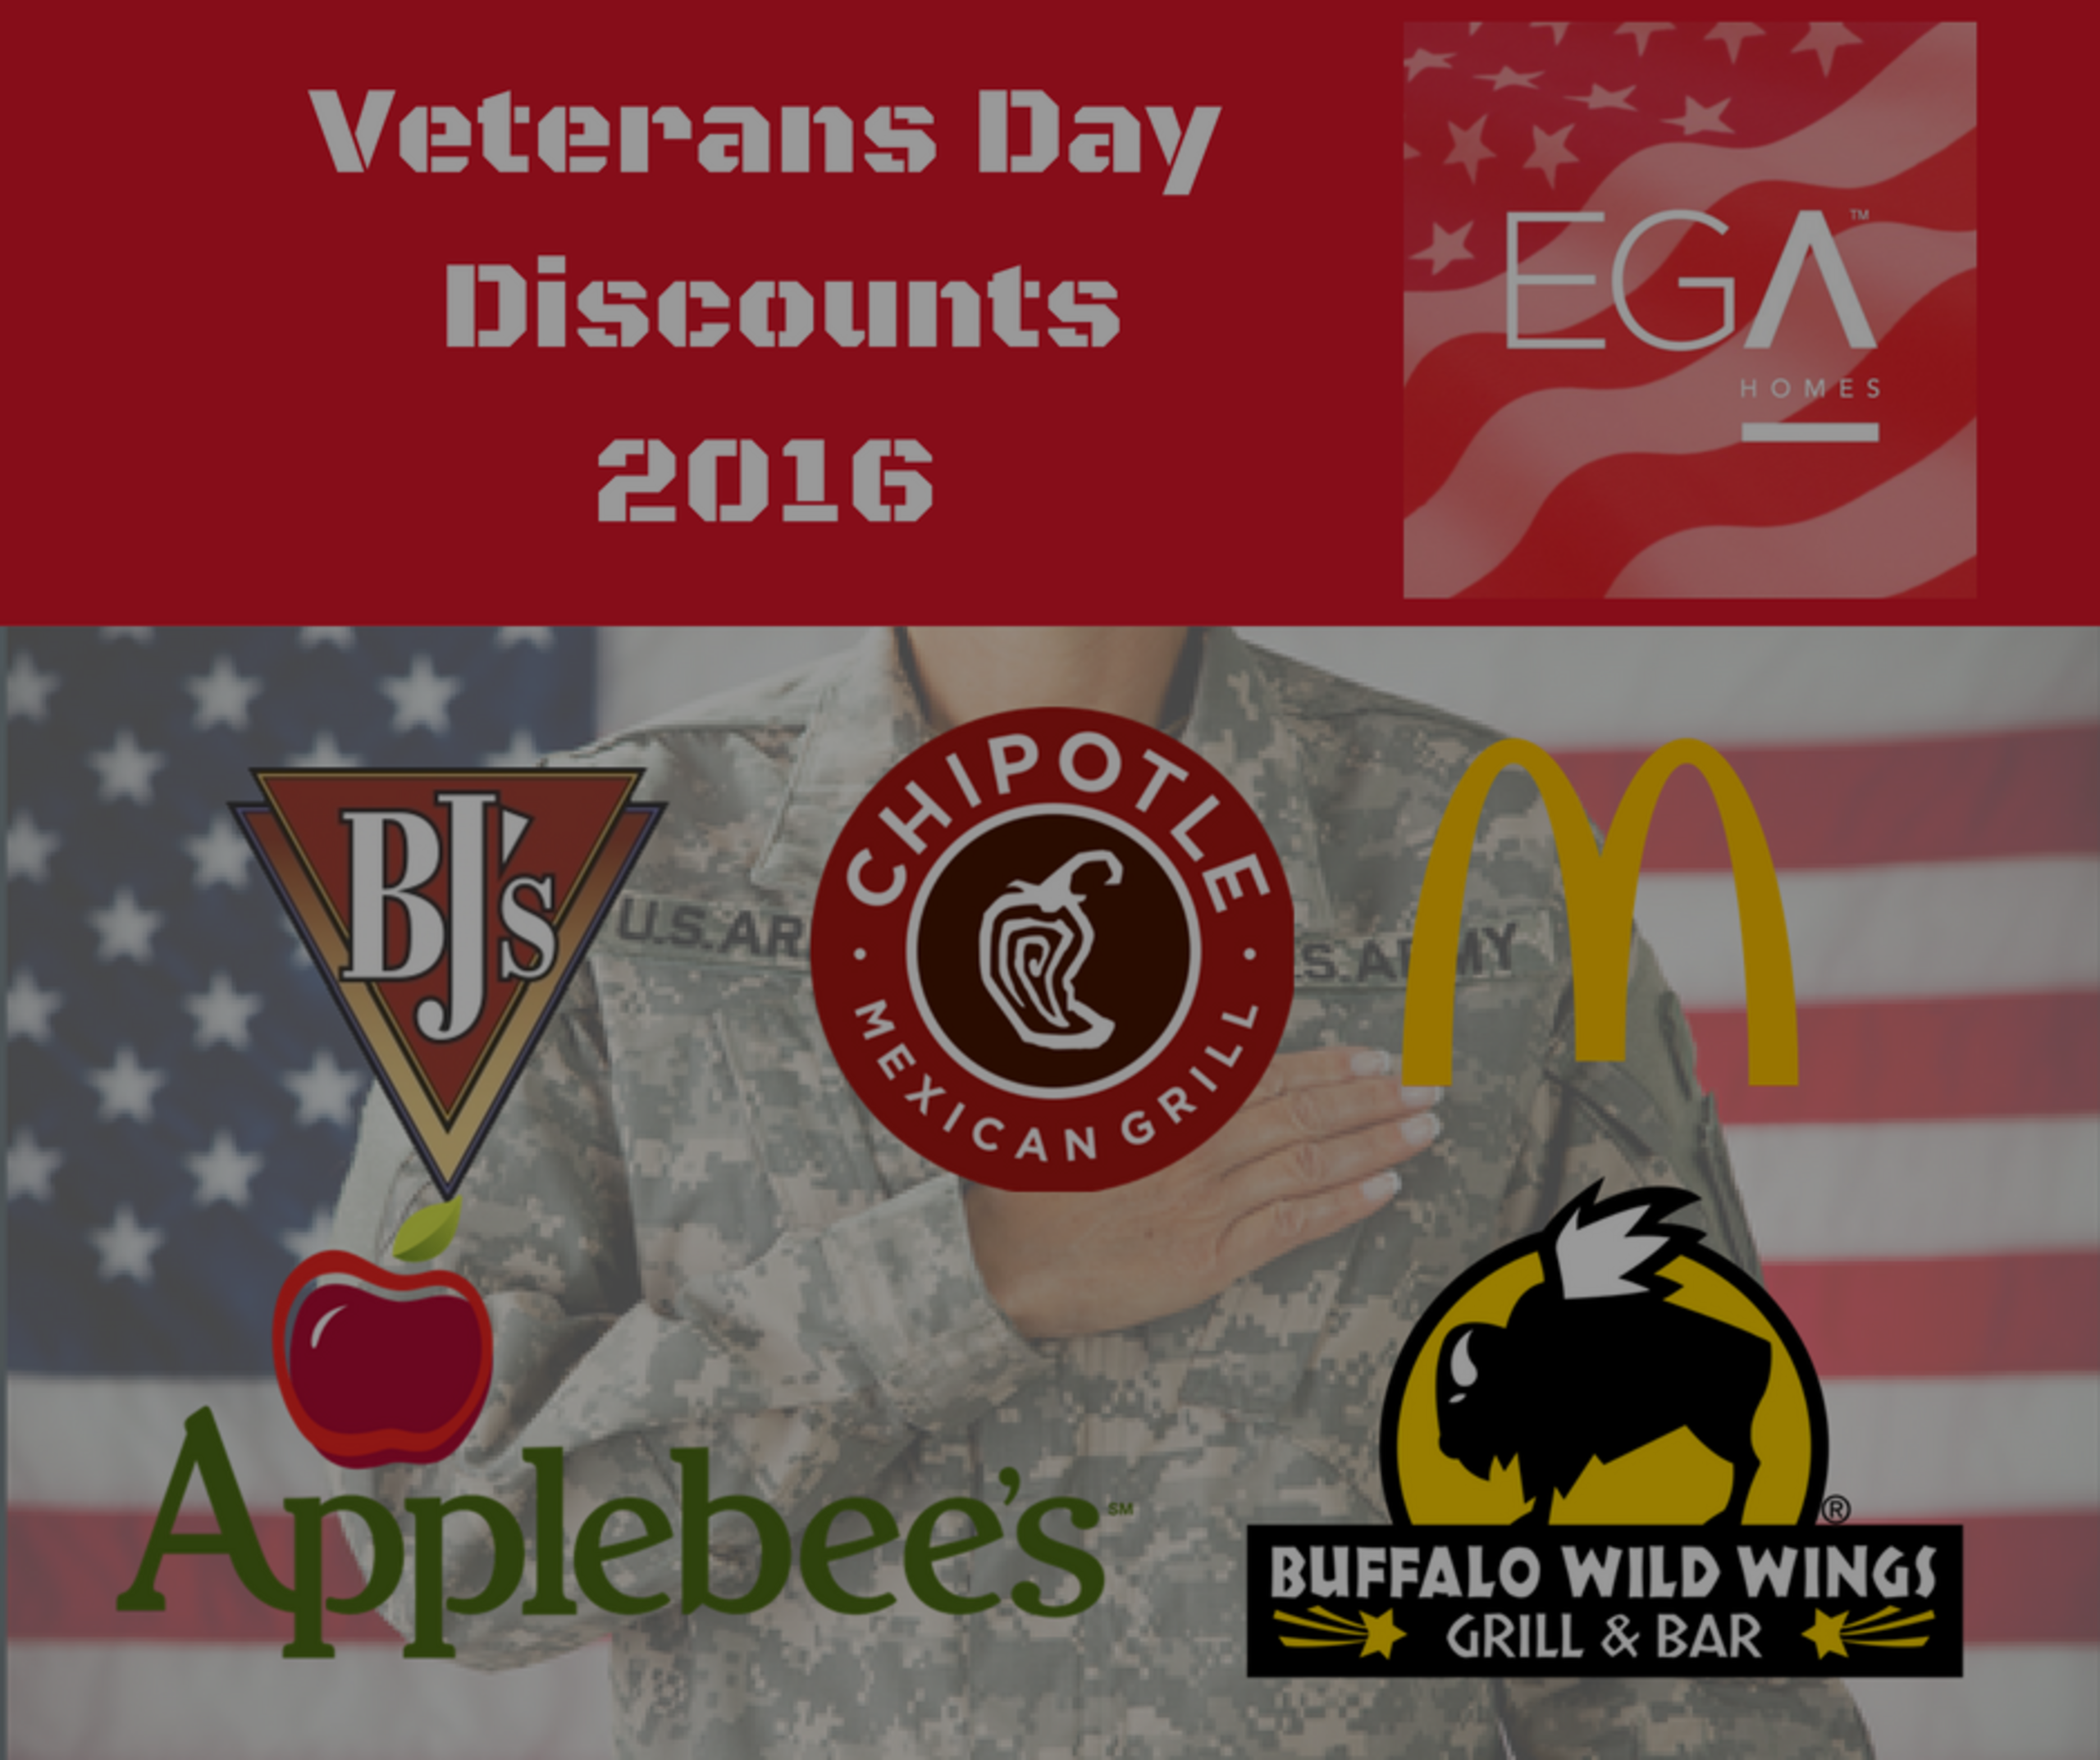 Veterans Day Military Discounts